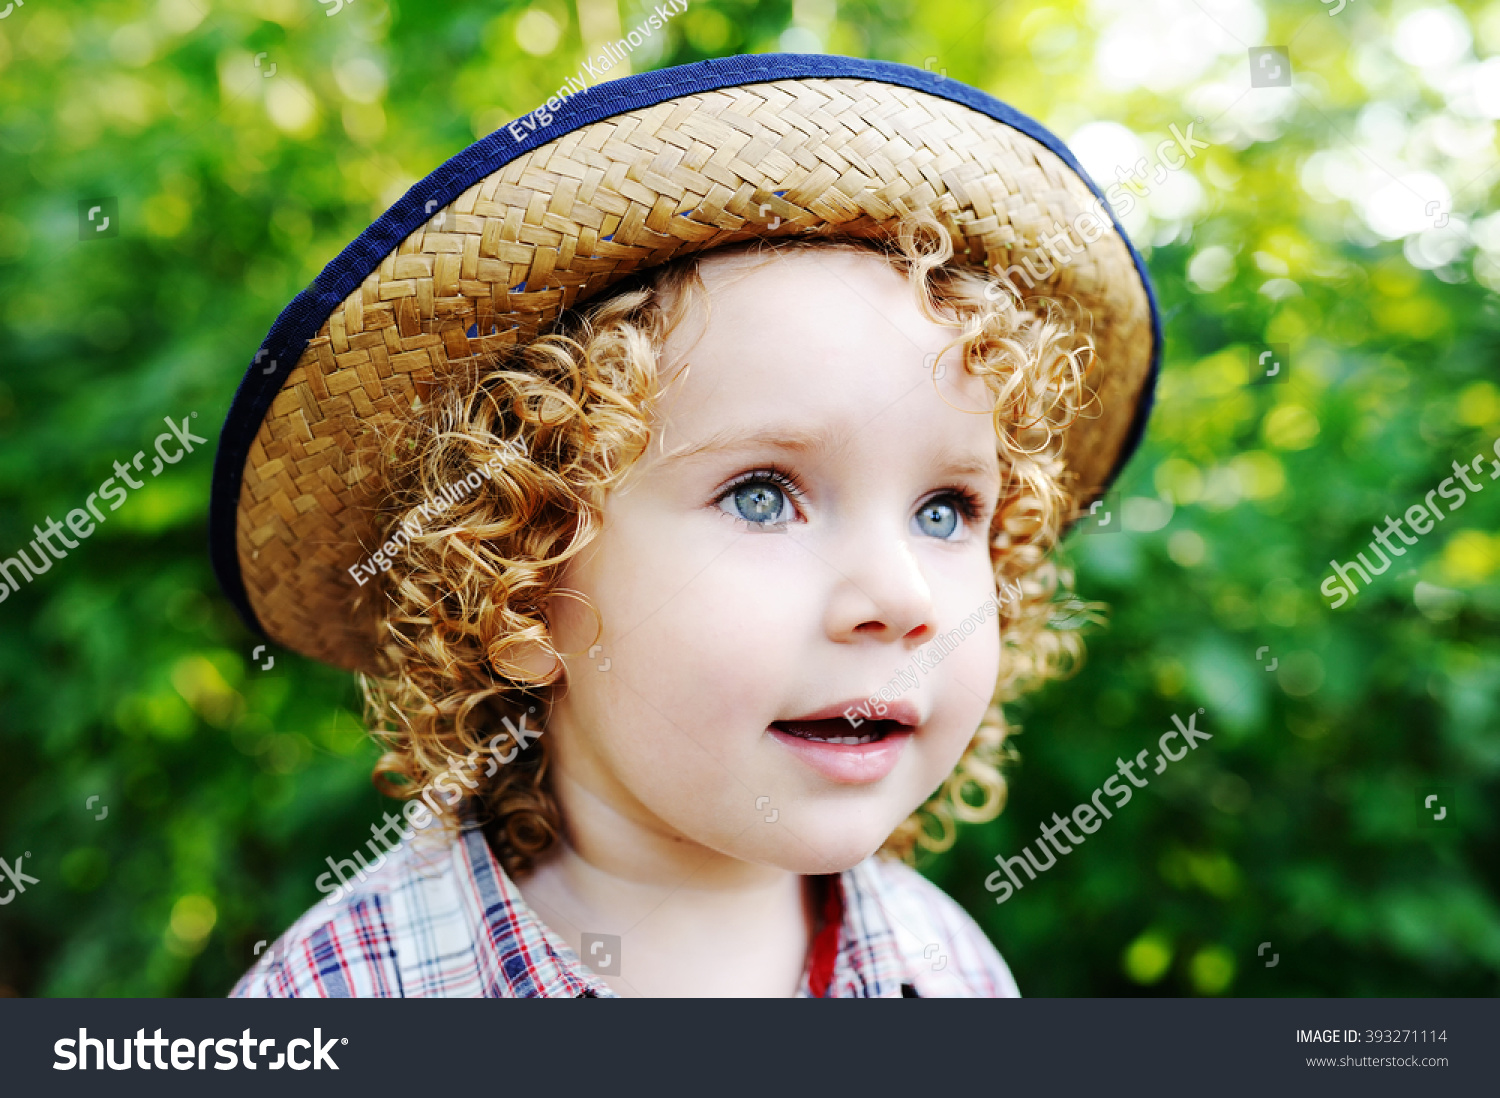 c69e28c6f Stockfoto 393271114 med Portrait Curly Redhaired Baby Hat Cute ...